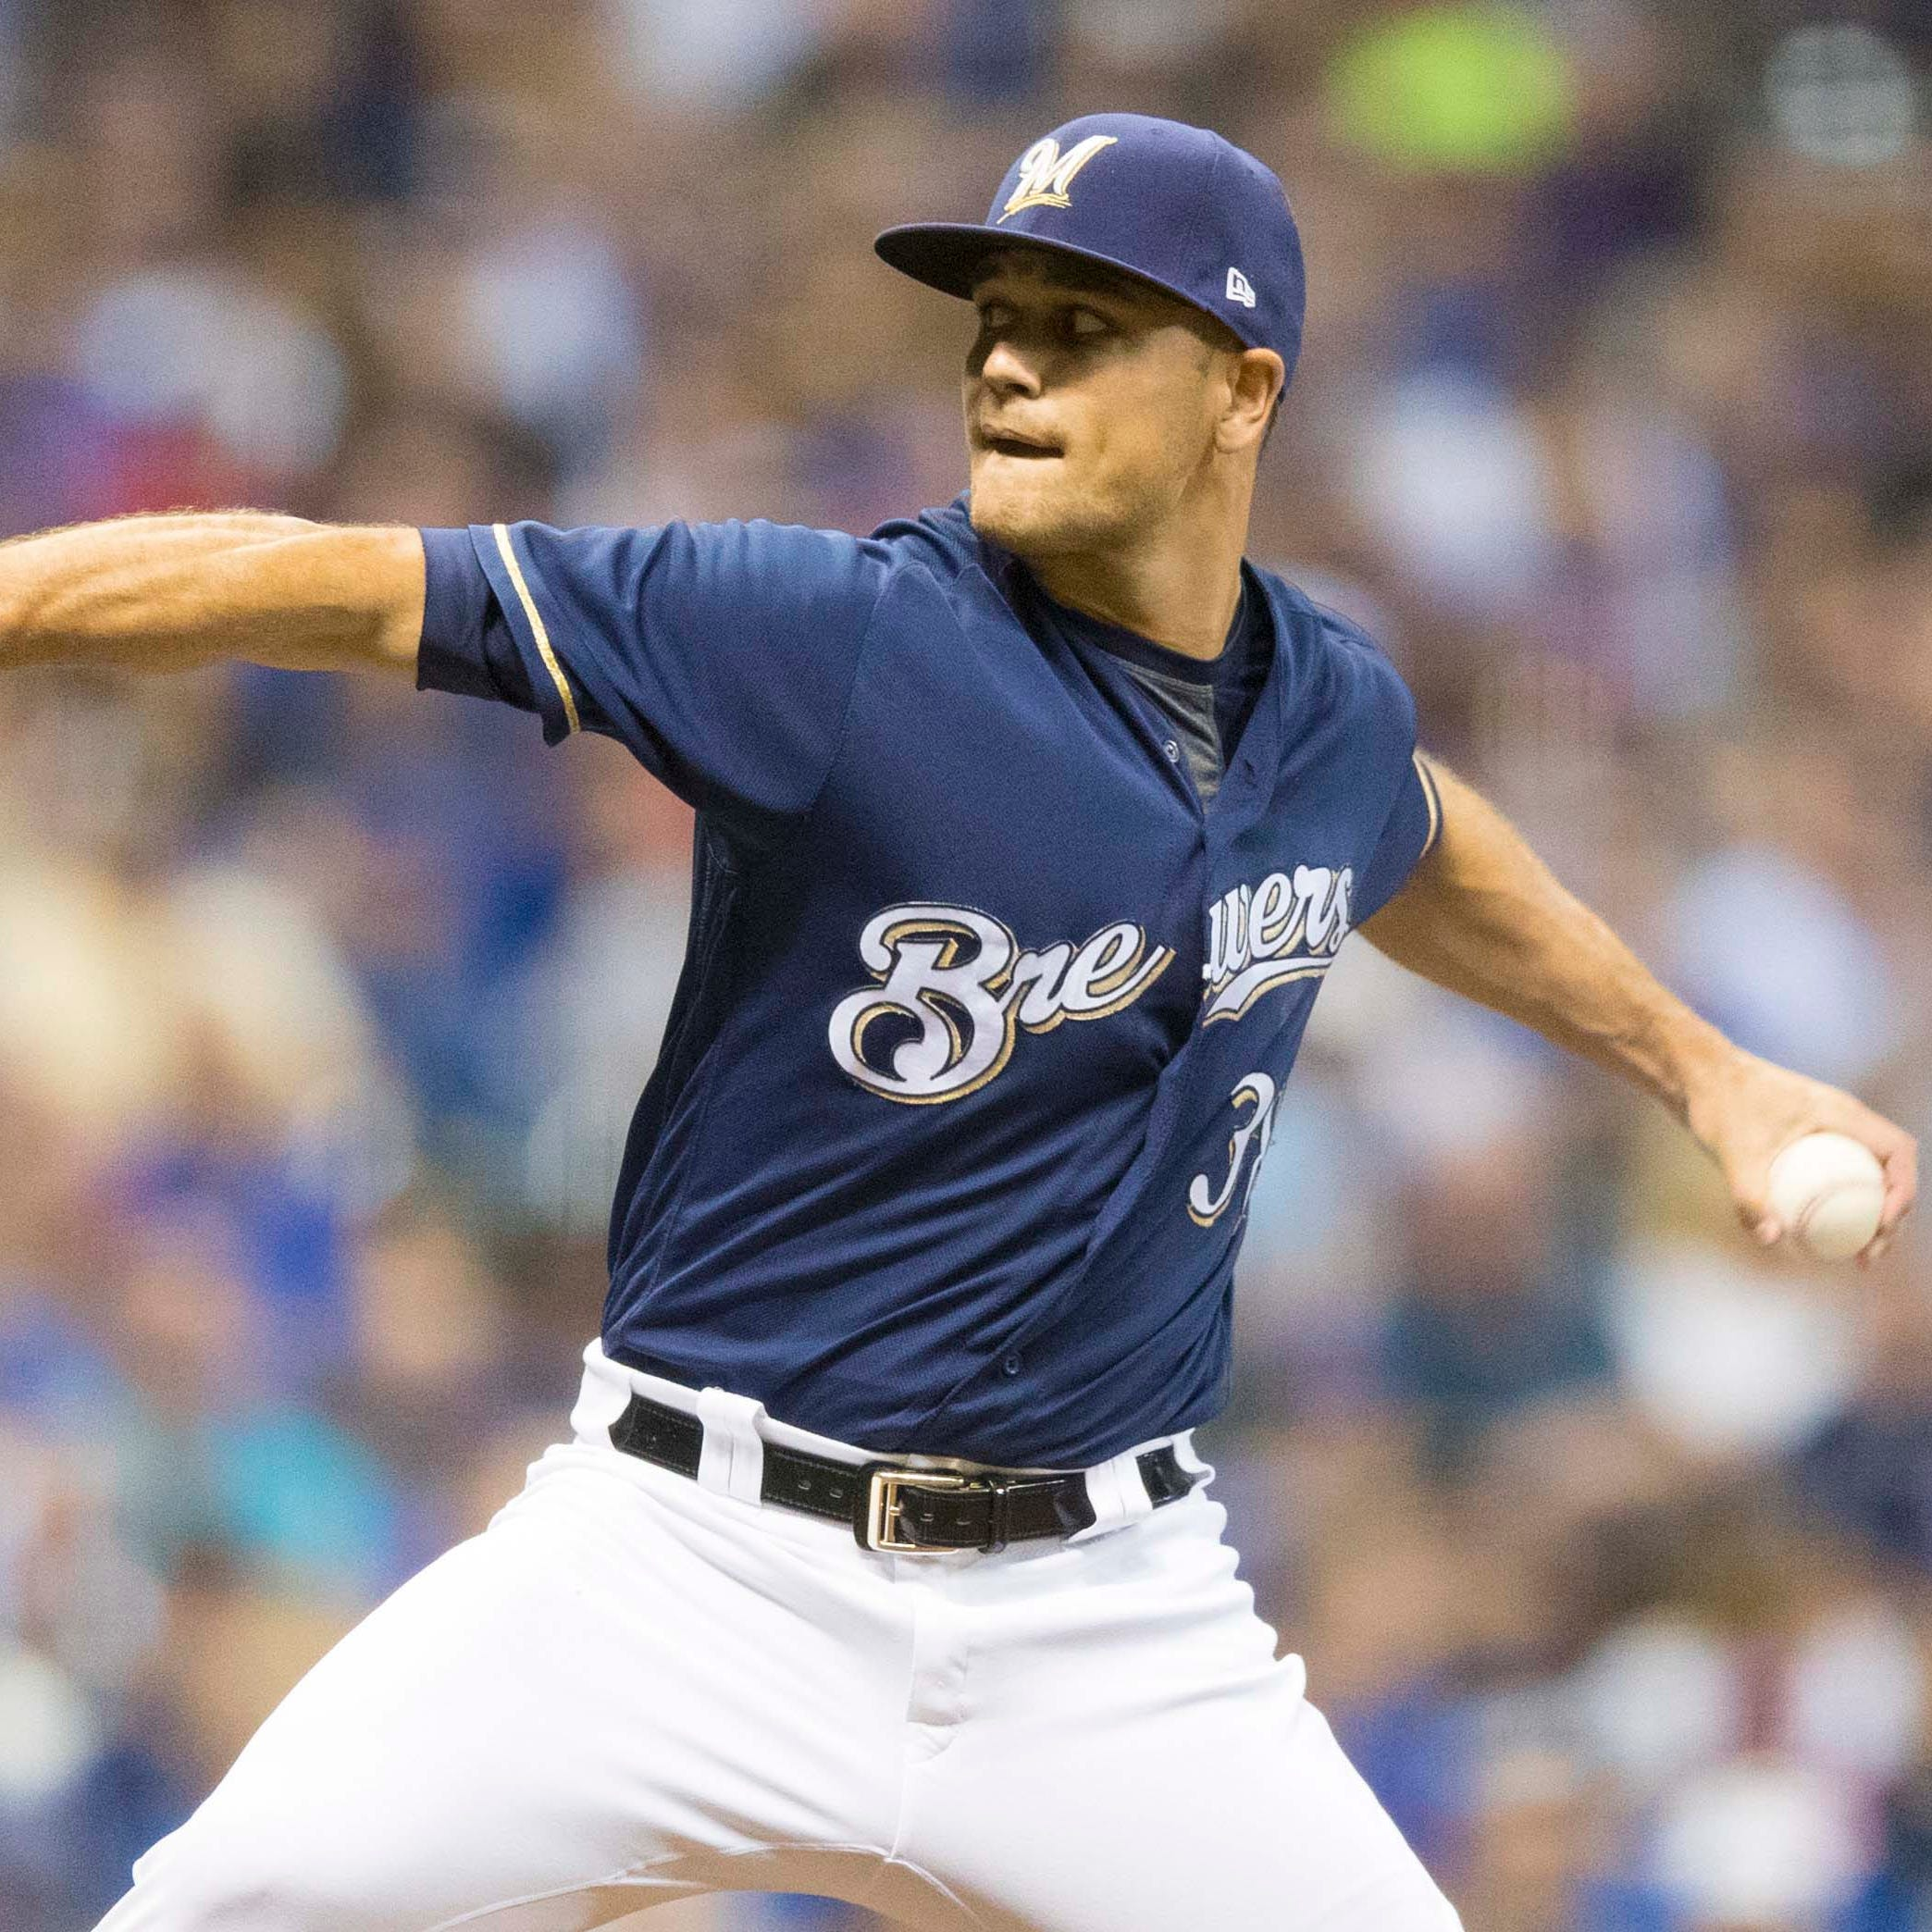 Brewers will send left-handed reliever Dan Jennings to the mound first Monday against Cards